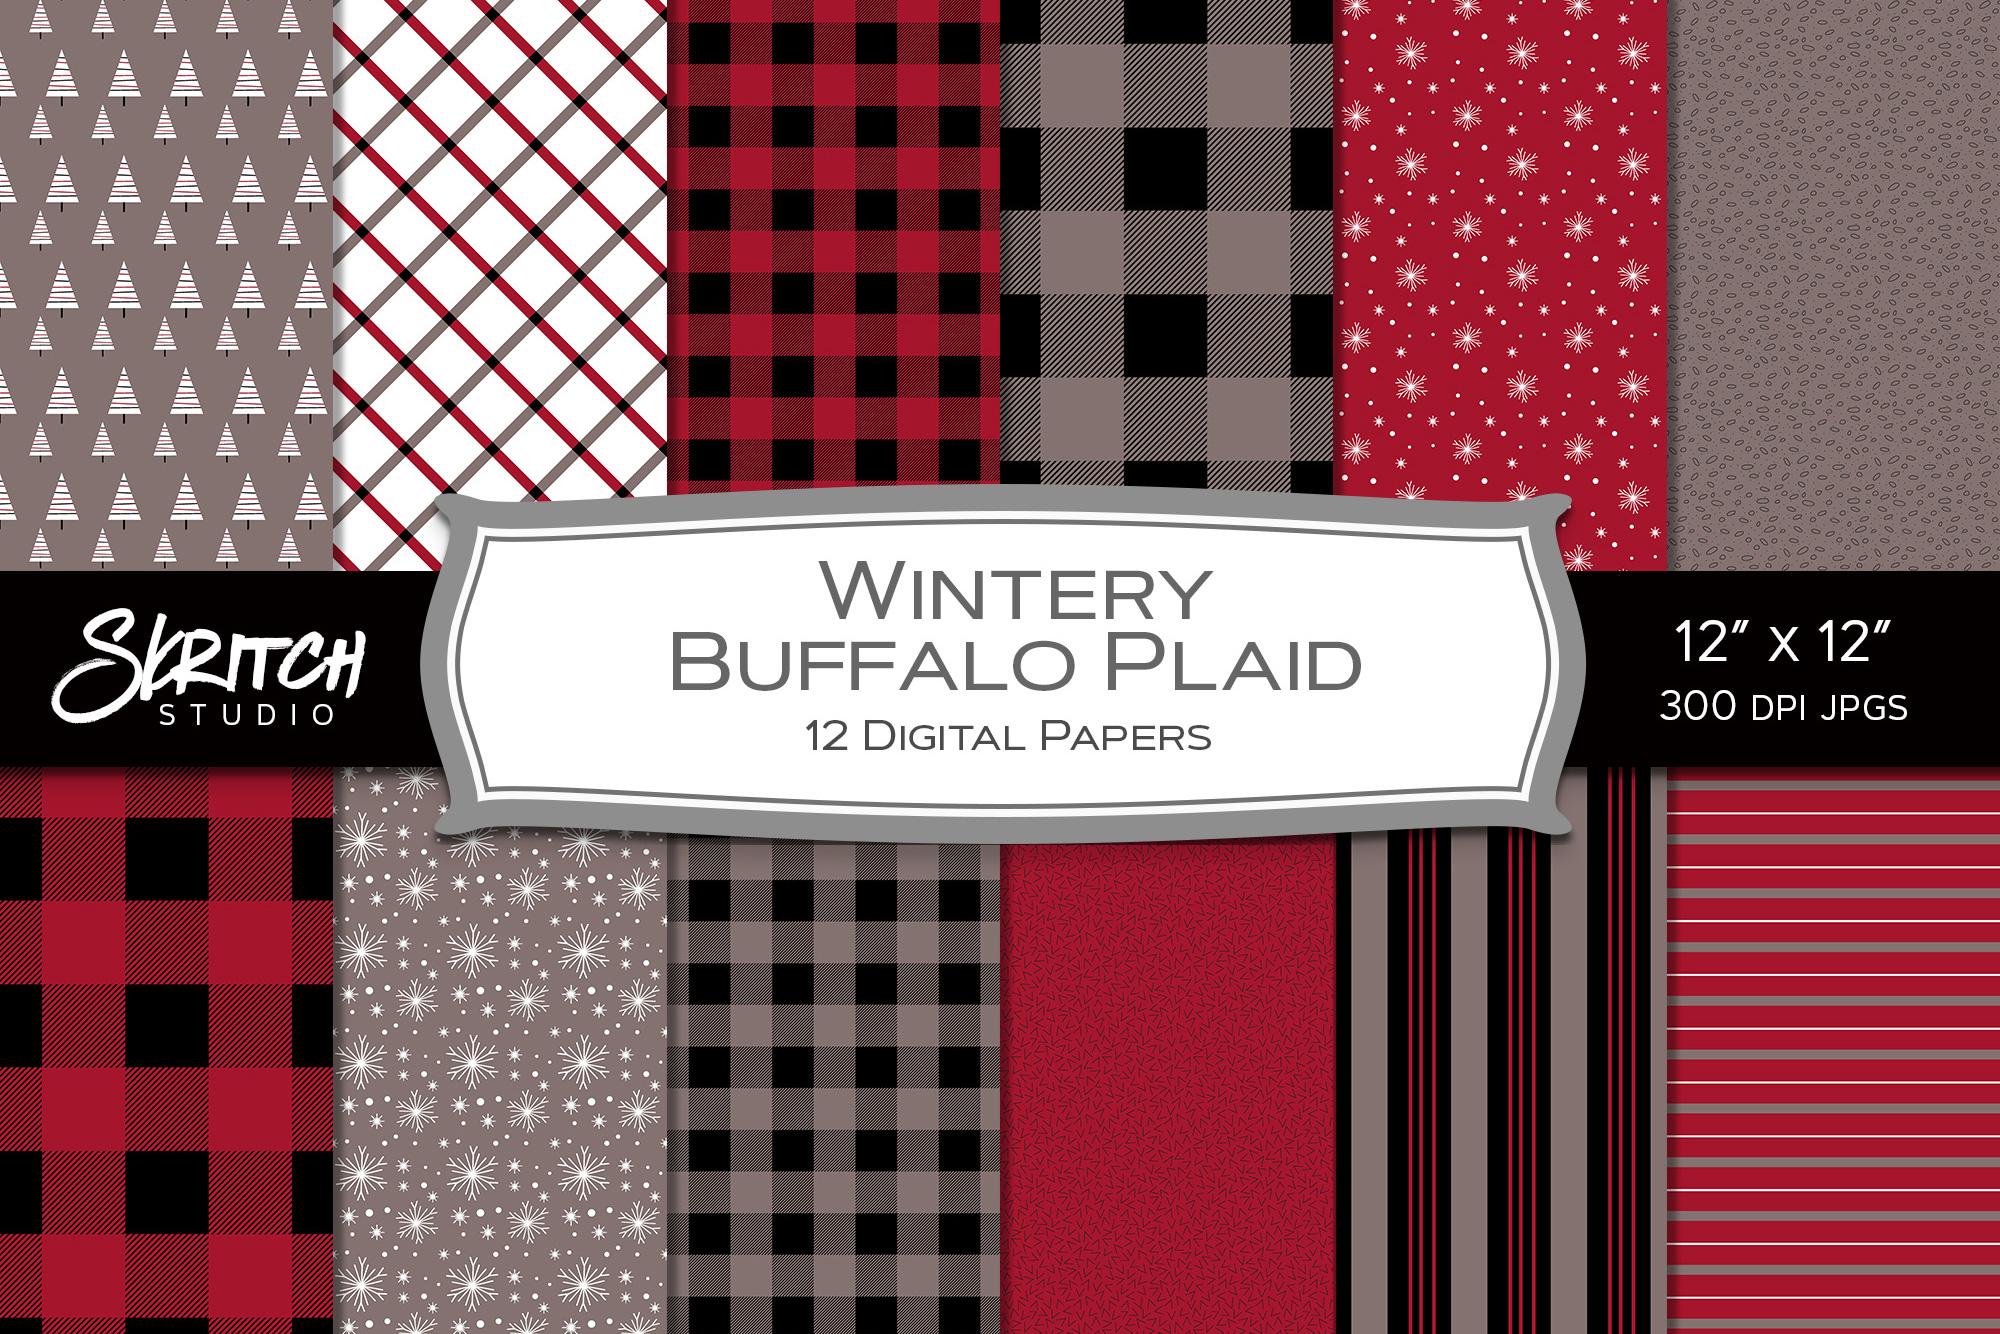 Wintery Buffalo Plaid - 12 Digital Papers example image 1